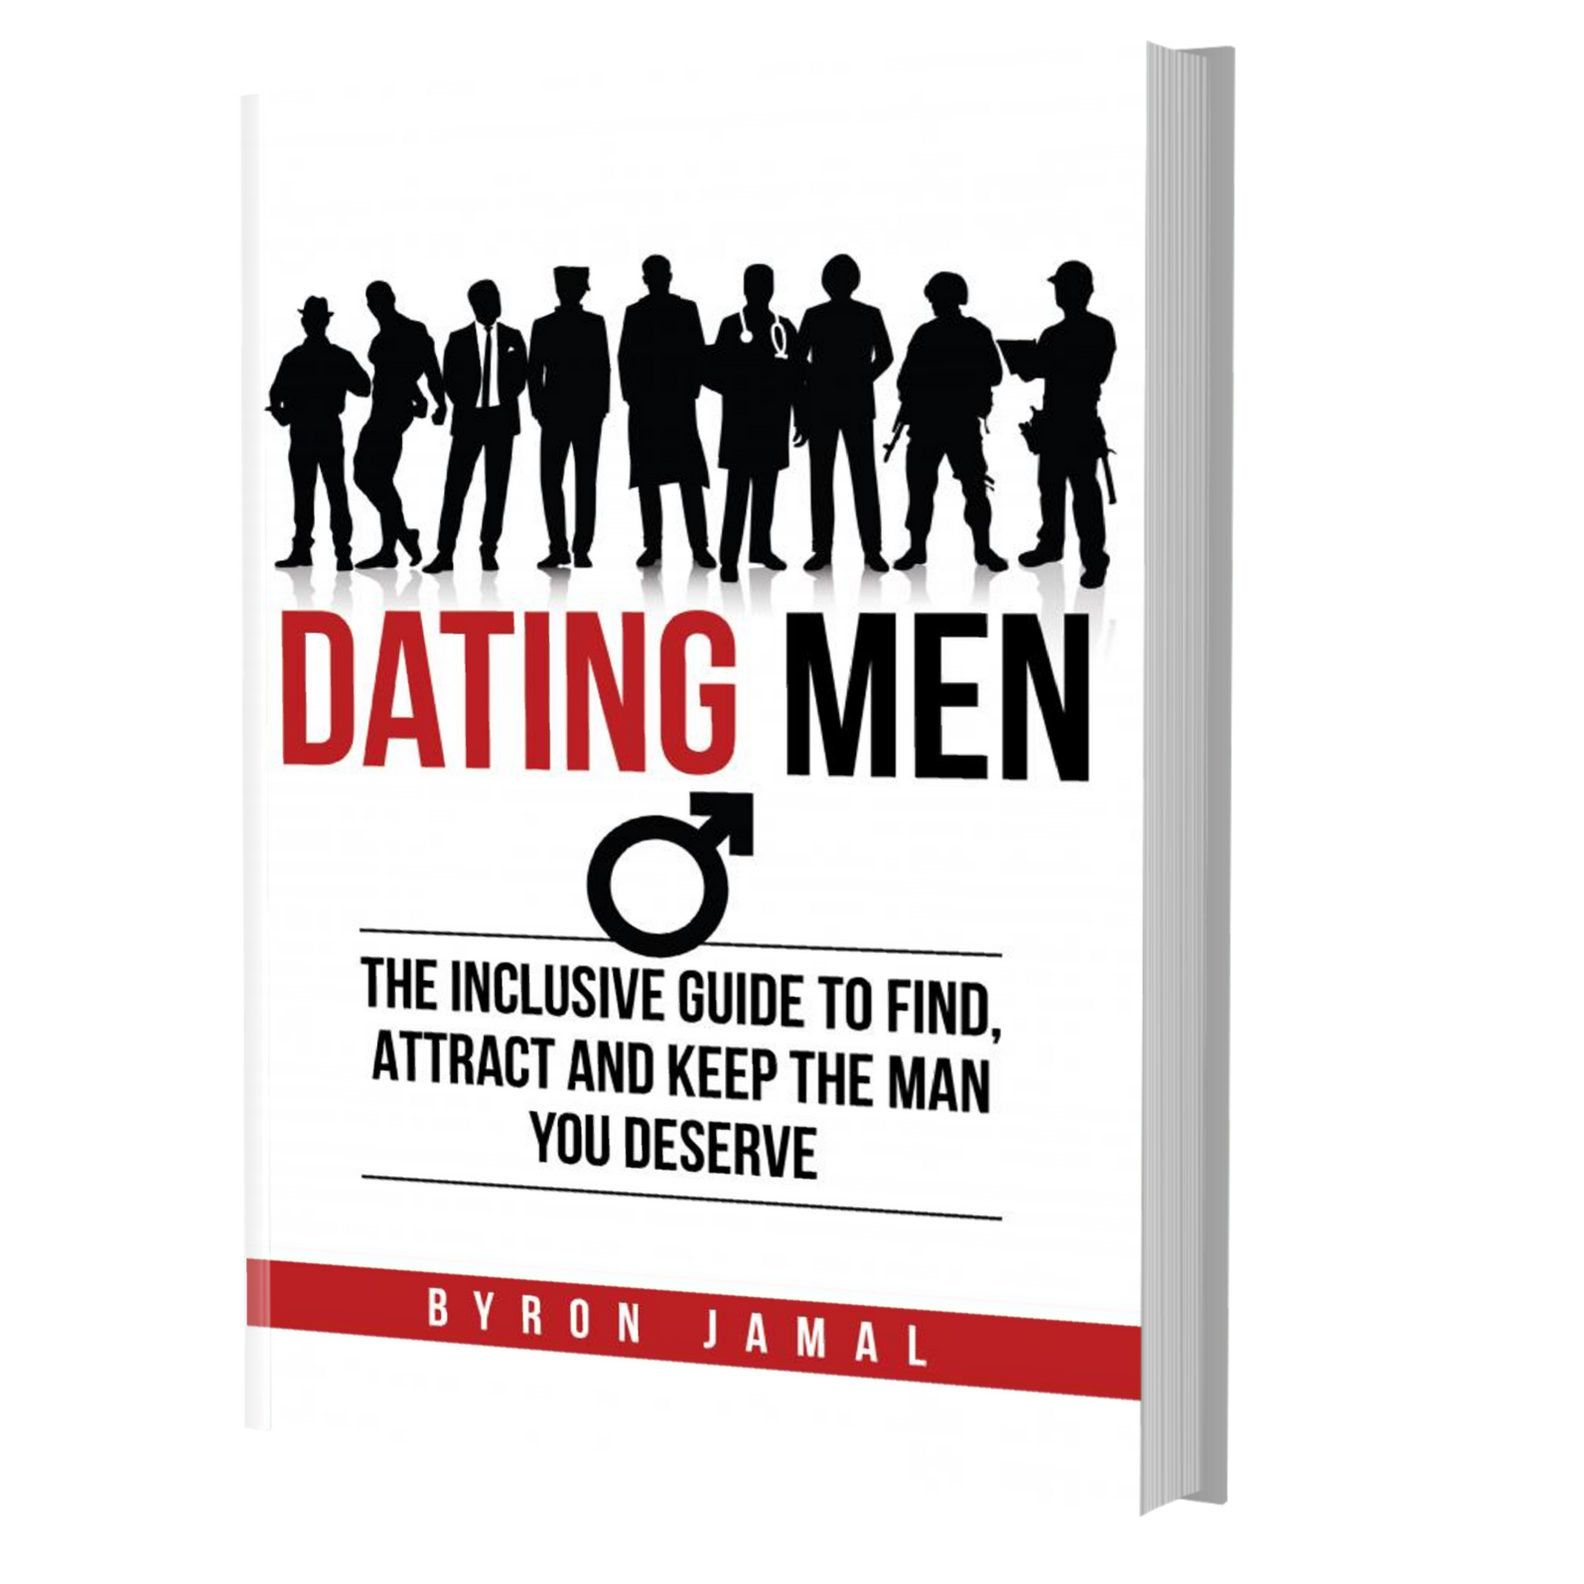 Dating Men: The Inclusive Guide to Find, Attract, and Keep the Man You Deserve - Paperback